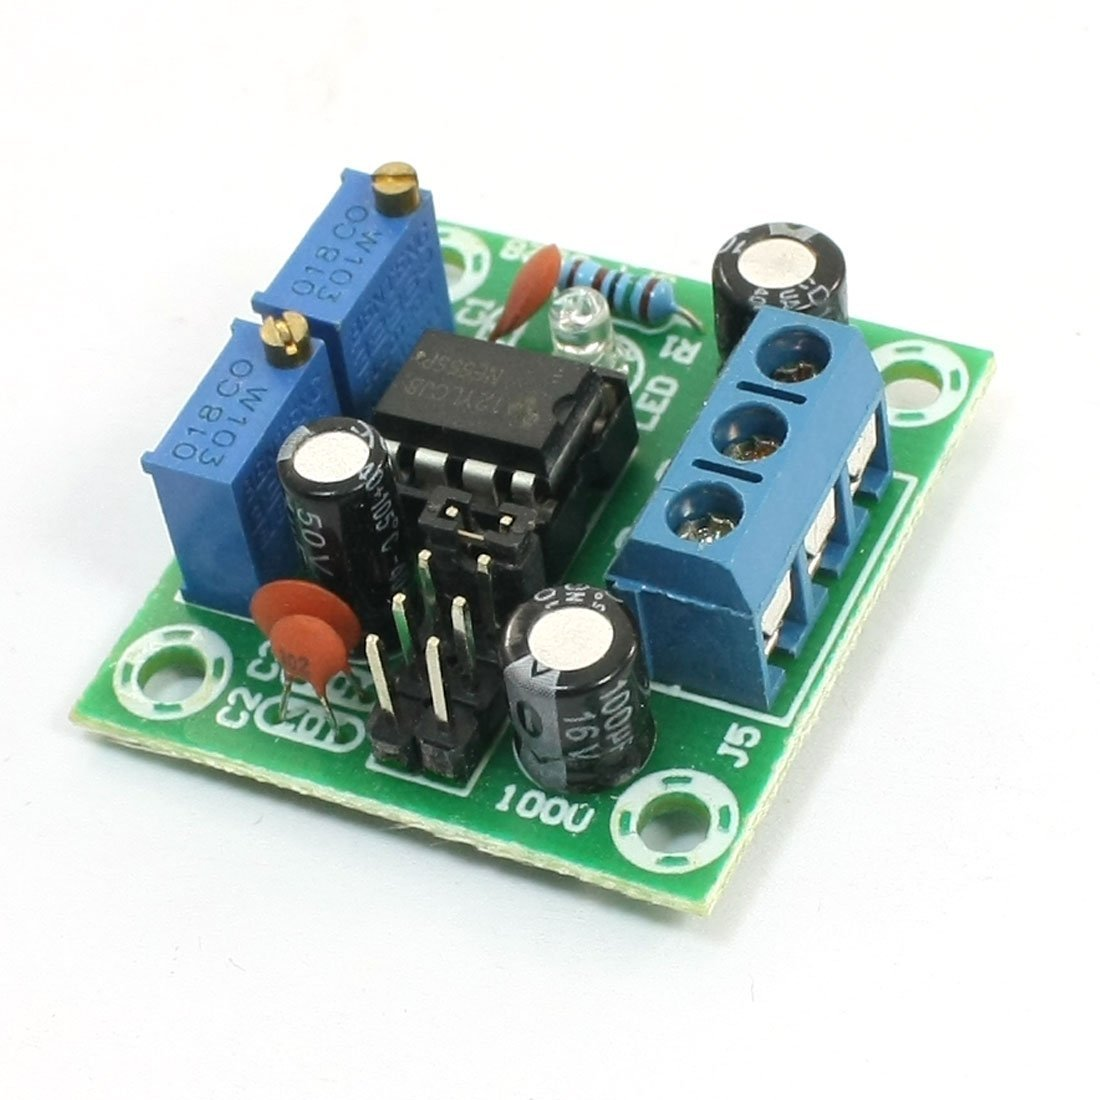 Uxcell A13100900ux0307 Square Wave Signal Generator Ne555 Pulse Wiring 555 Ic As A Oscillator For Two Led Flasher Application Module W Indicator 5 15v Industrial Scientific